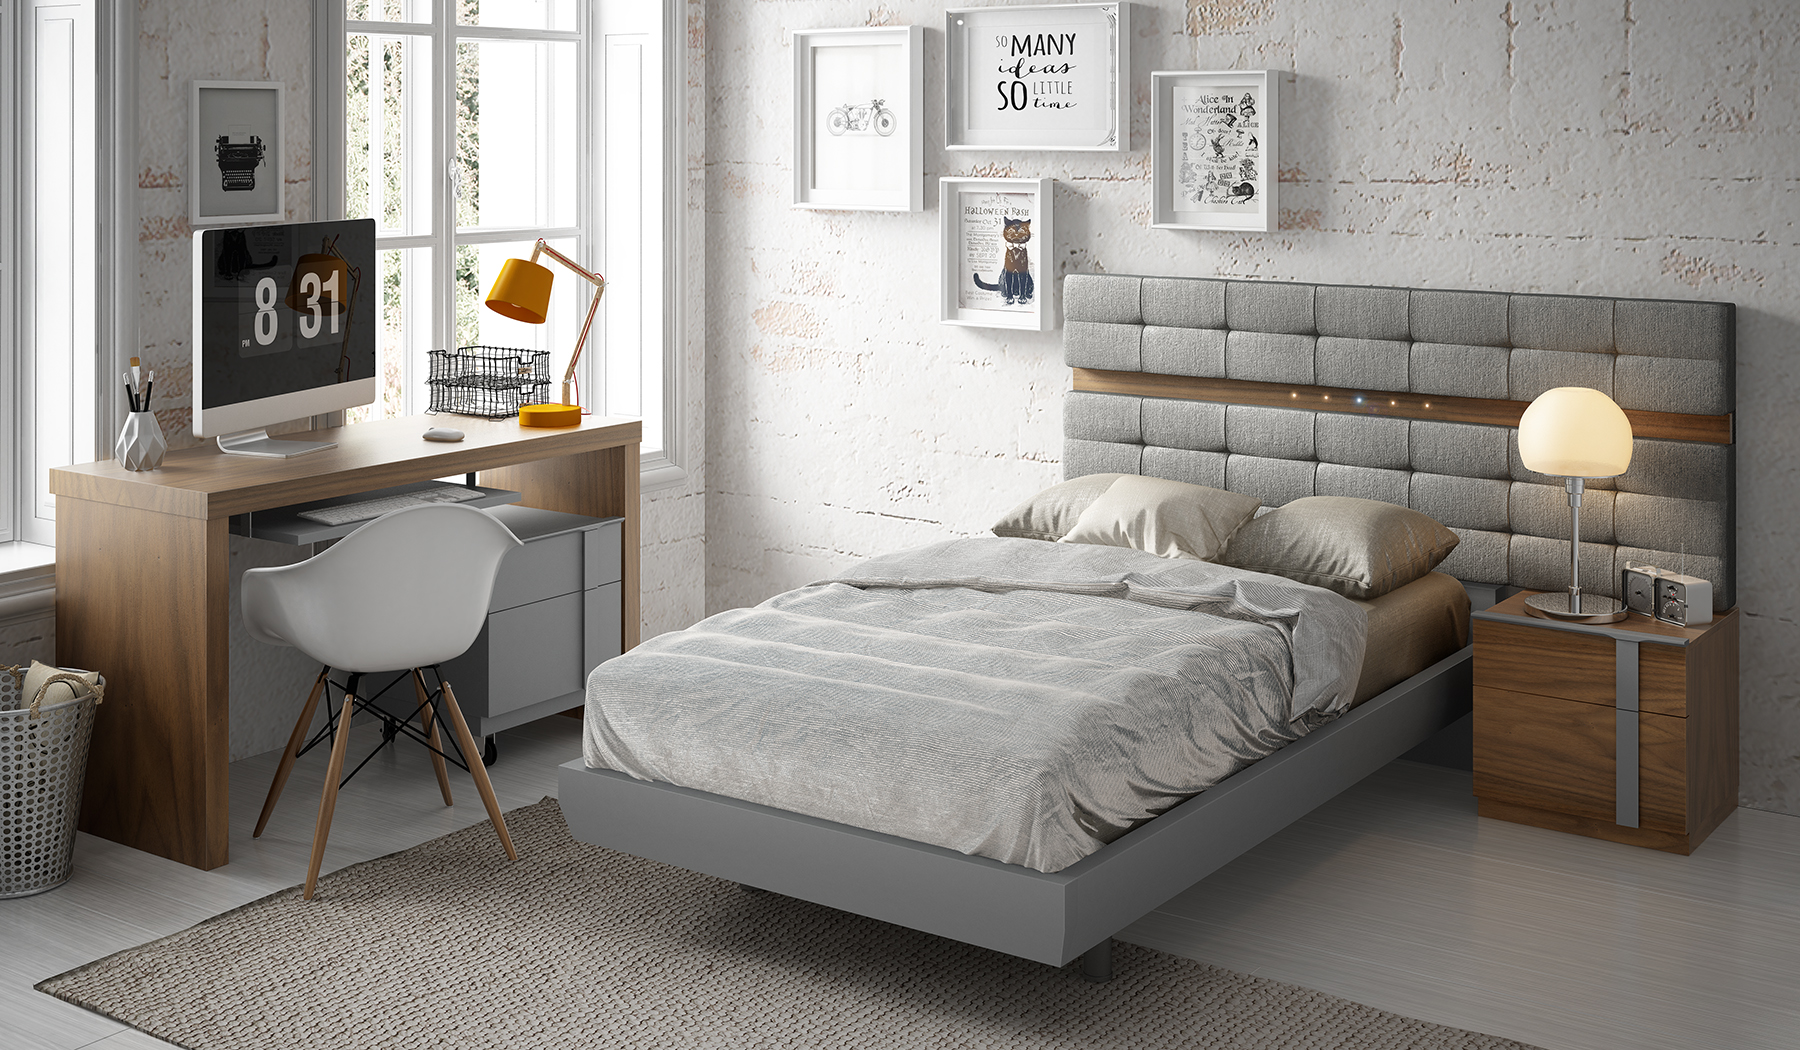 Brands Fenicia Modern Bedroom Sets, Spain Fenicia Composition 71 / single 2